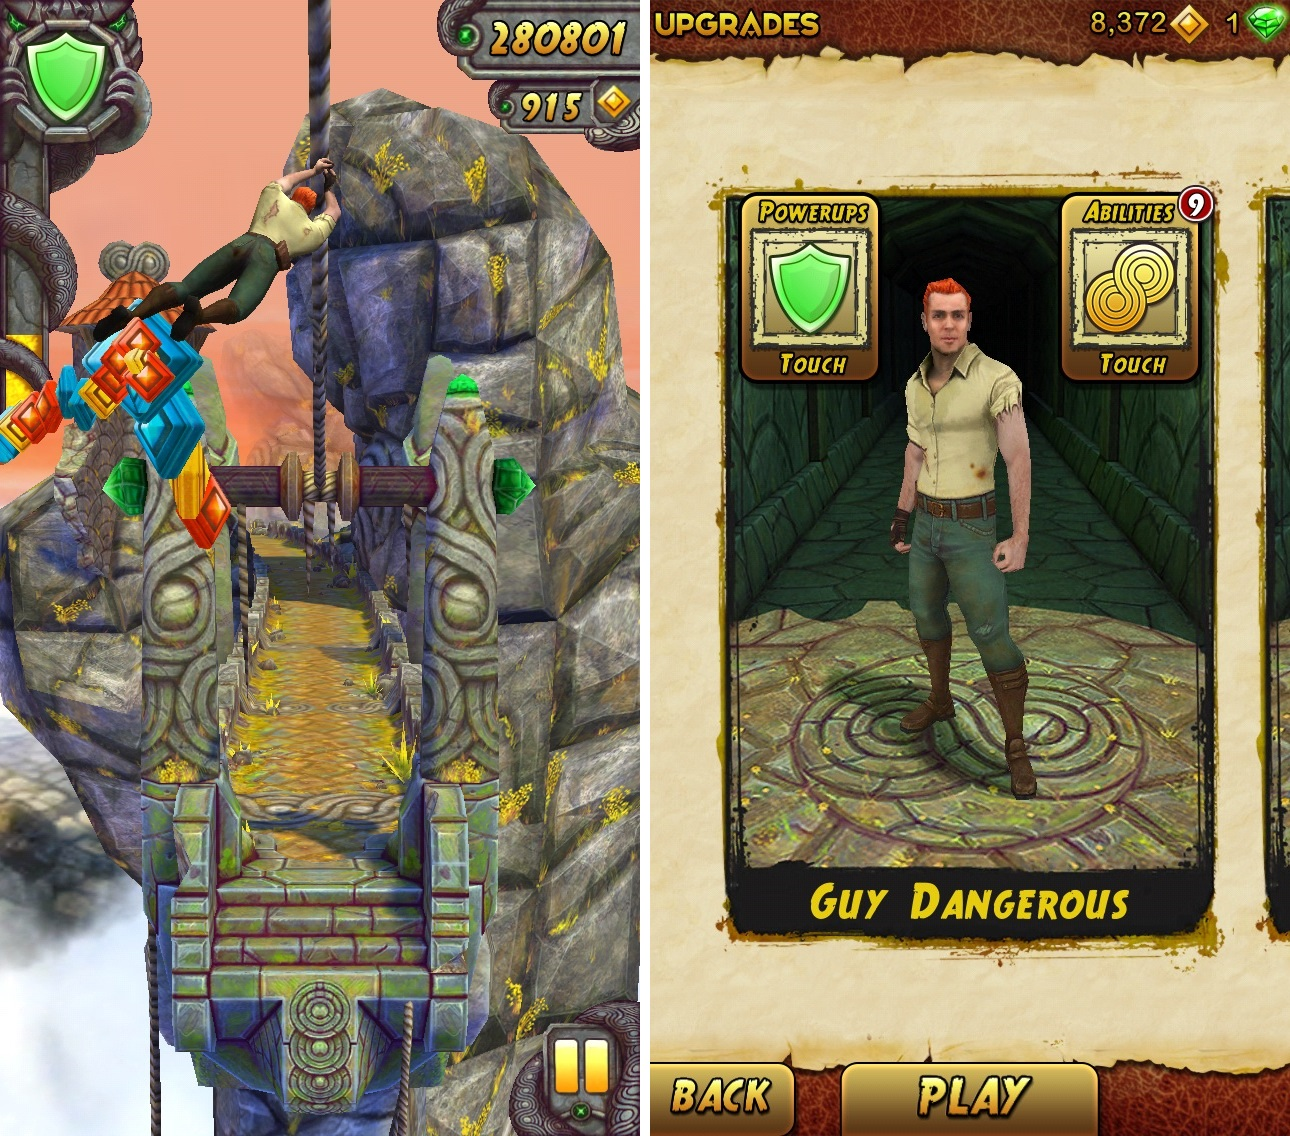 temple run 2 zipline temple run 2 zipline mine temple